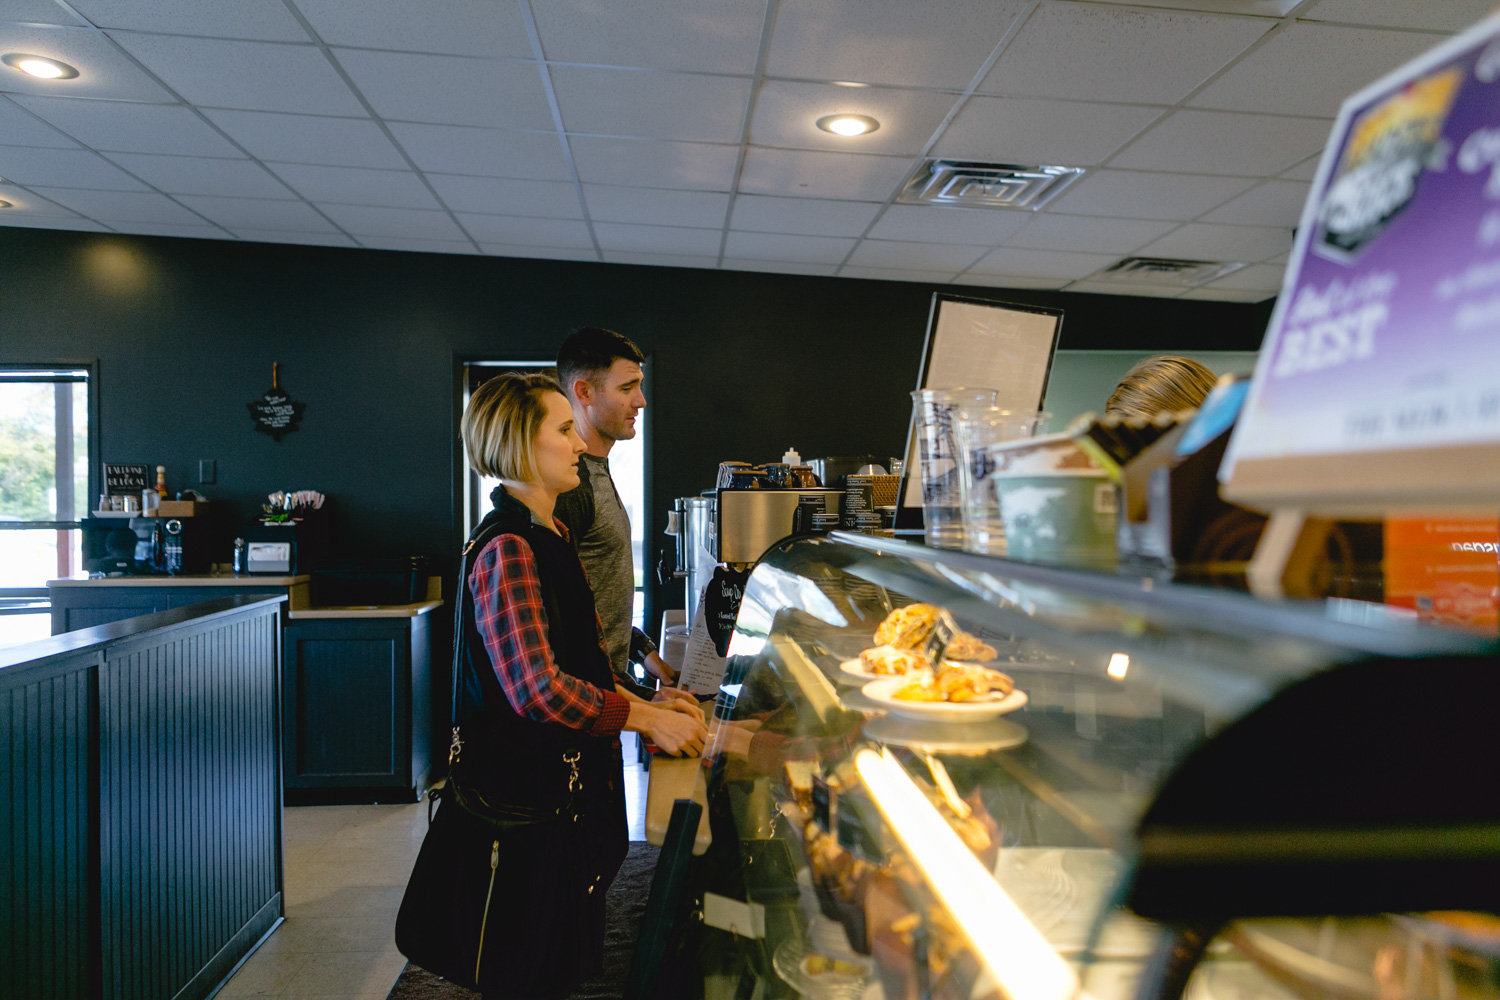 Radina's Coffee House, Manhattan, Kansas. Couple Photography Session captured by Renee McDaniel, documentary and lifestyle photographer with Renee McDaniel Photography